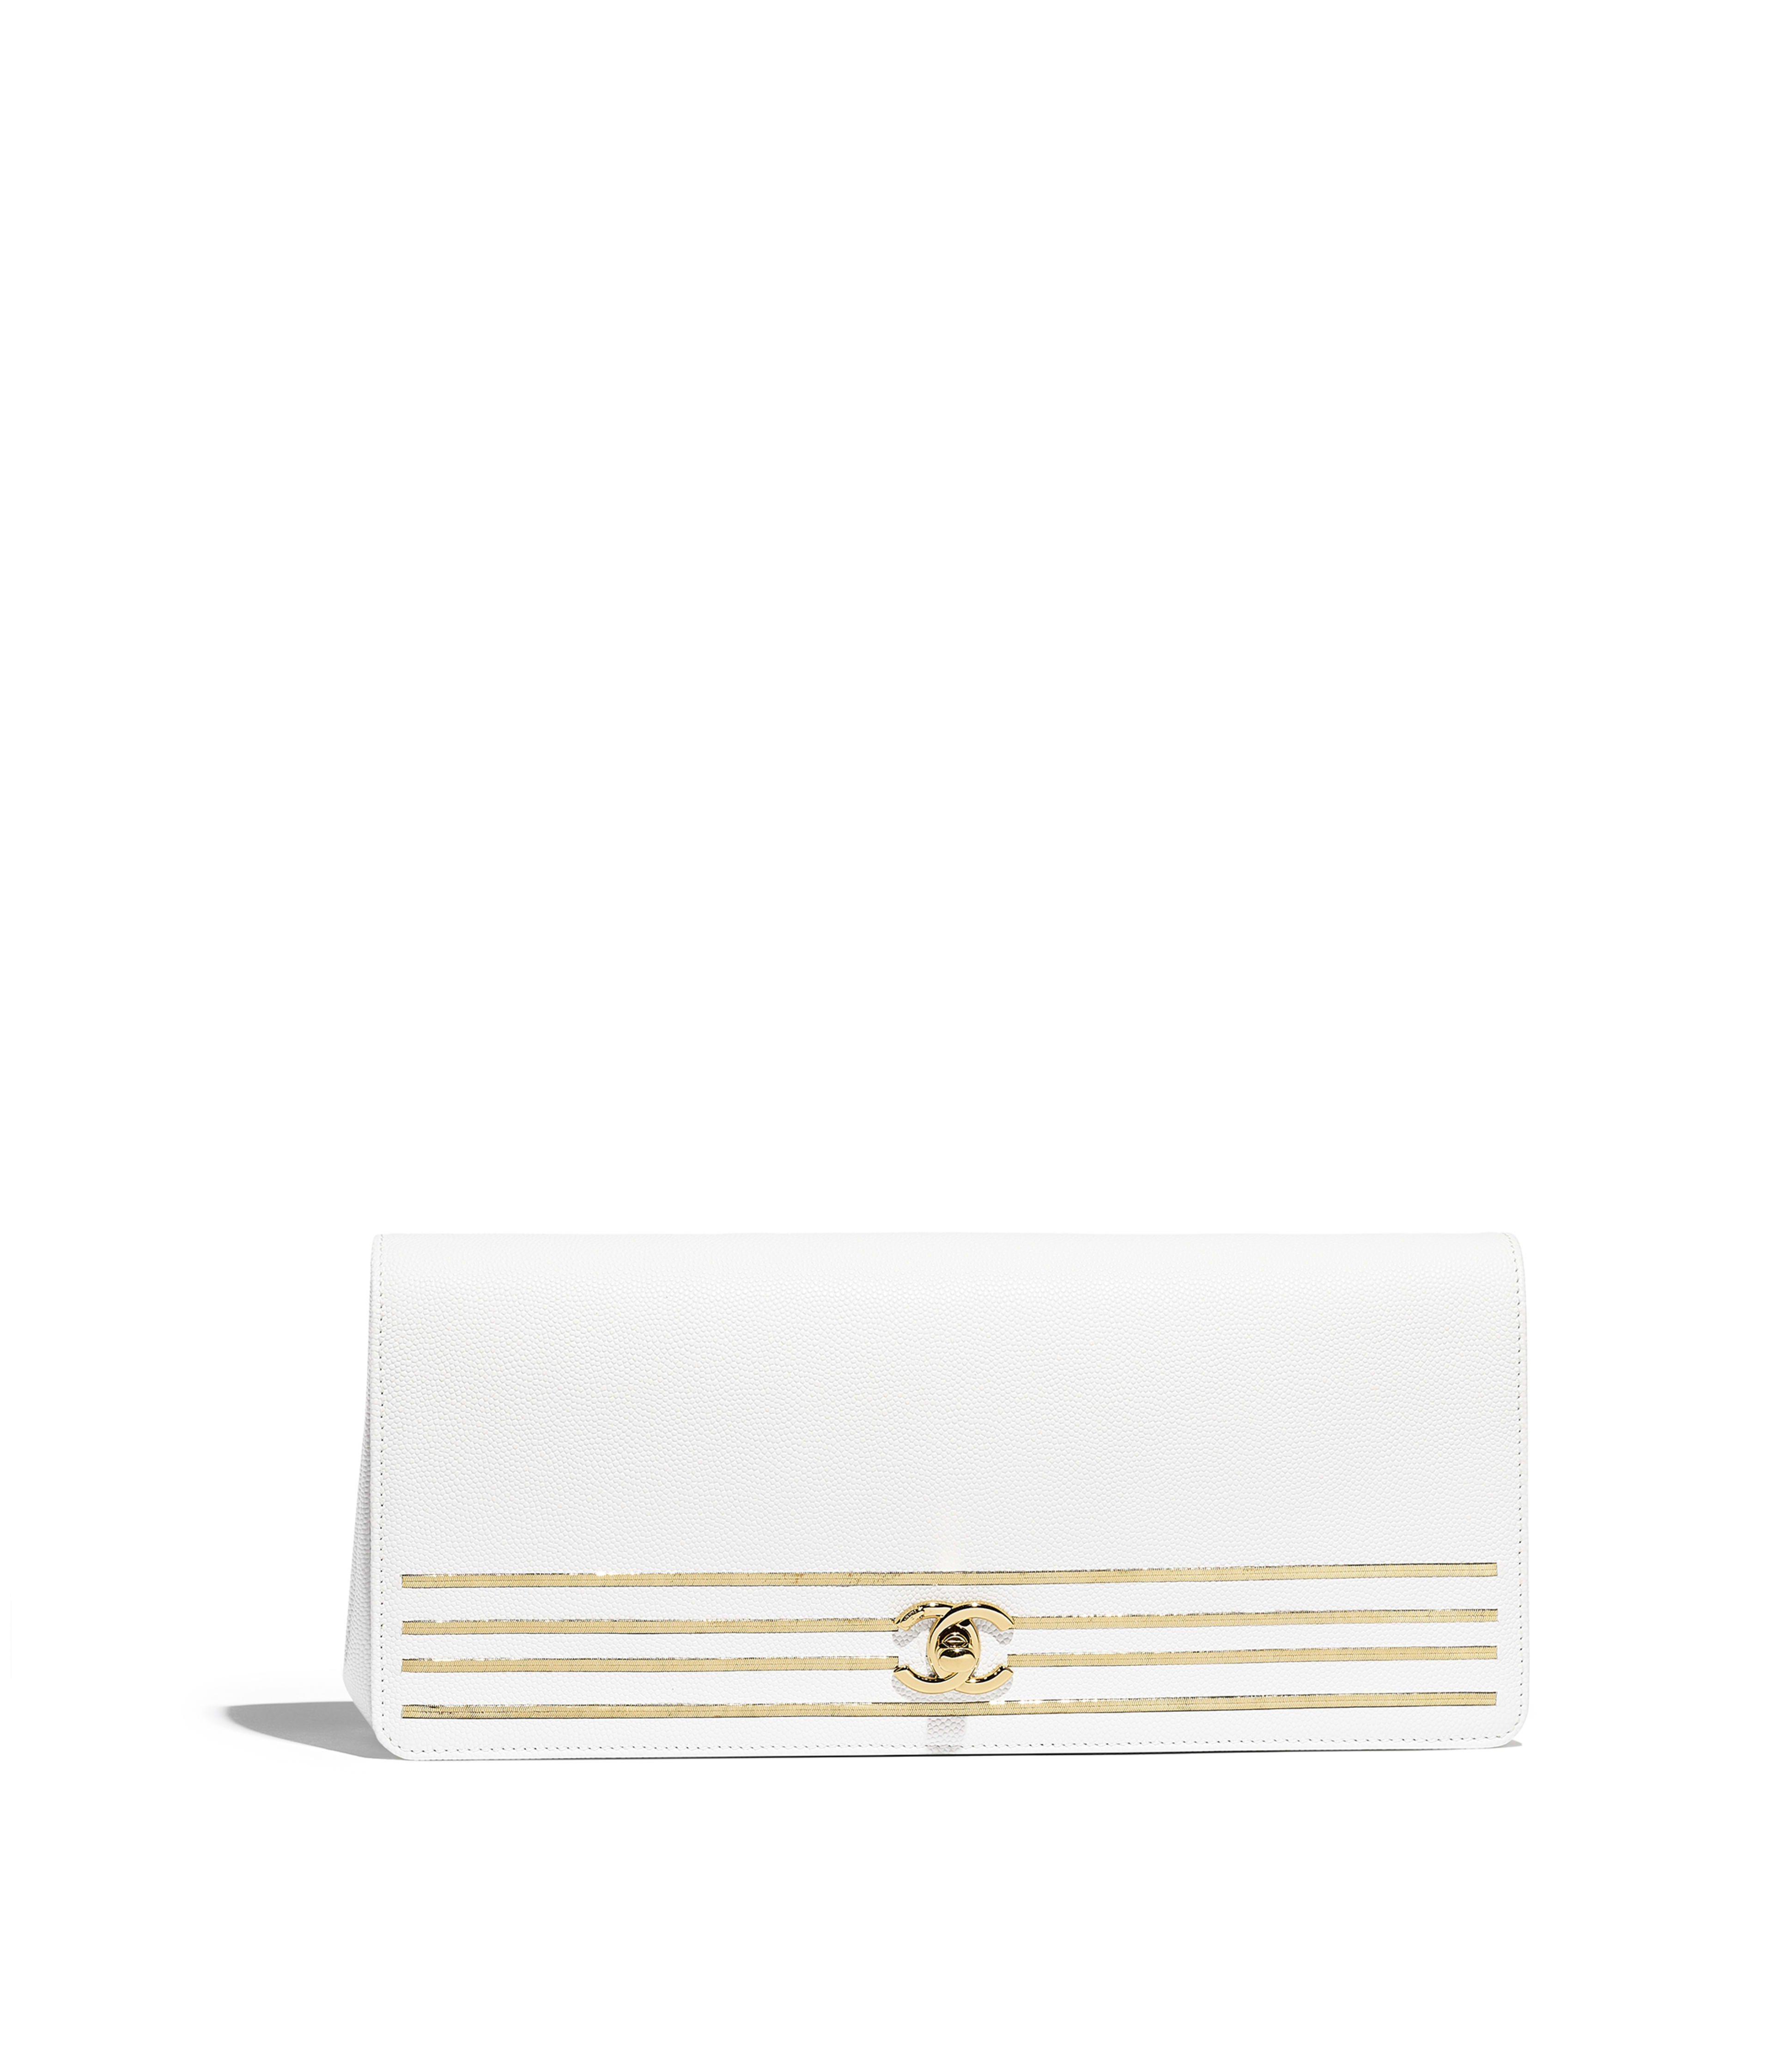 b49154ee3557 Clutch Embroidered Grained Calfskin & Gold-Tone Metal, White Ref.  AS0082Y8410510601